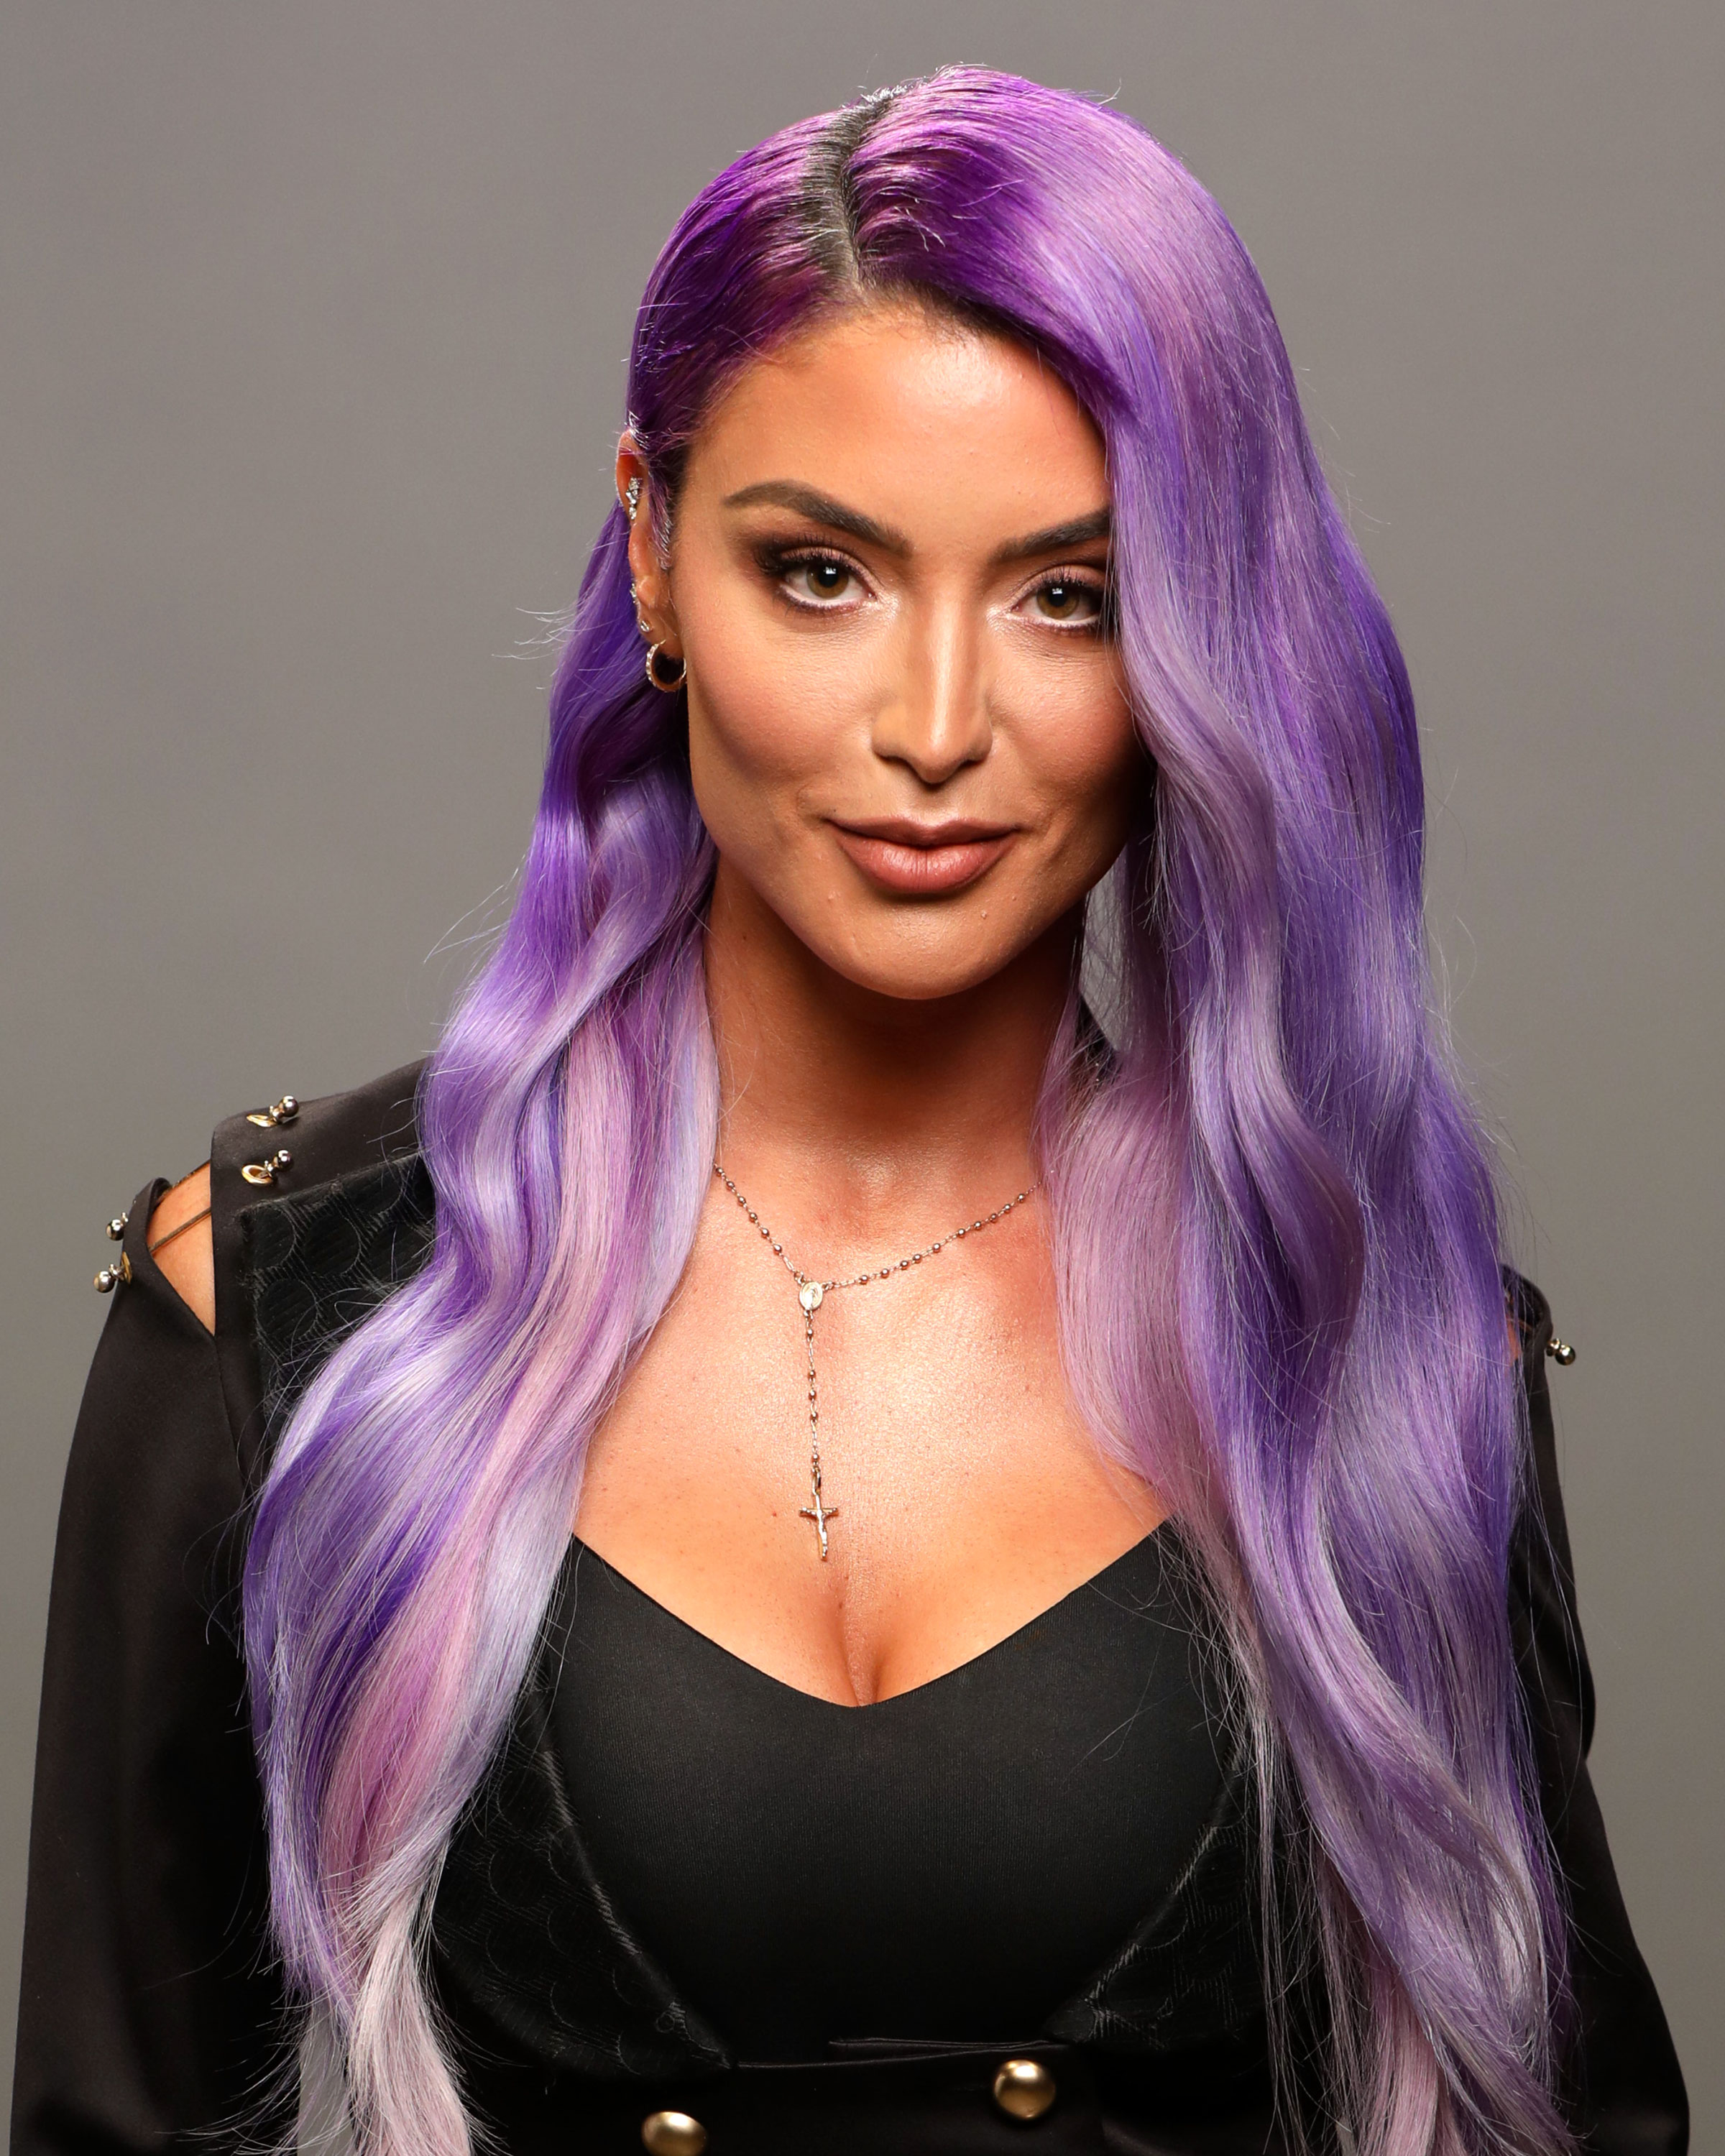 BIG-BROTHER-CELEBRITY-EDITION-Natalie Eva Marie - While her real name is Natalie Marie Coyle, the former pro-wrestler, 34, mainly goes by Eva Marie. She competed in the WWE from 2013 to 2017.